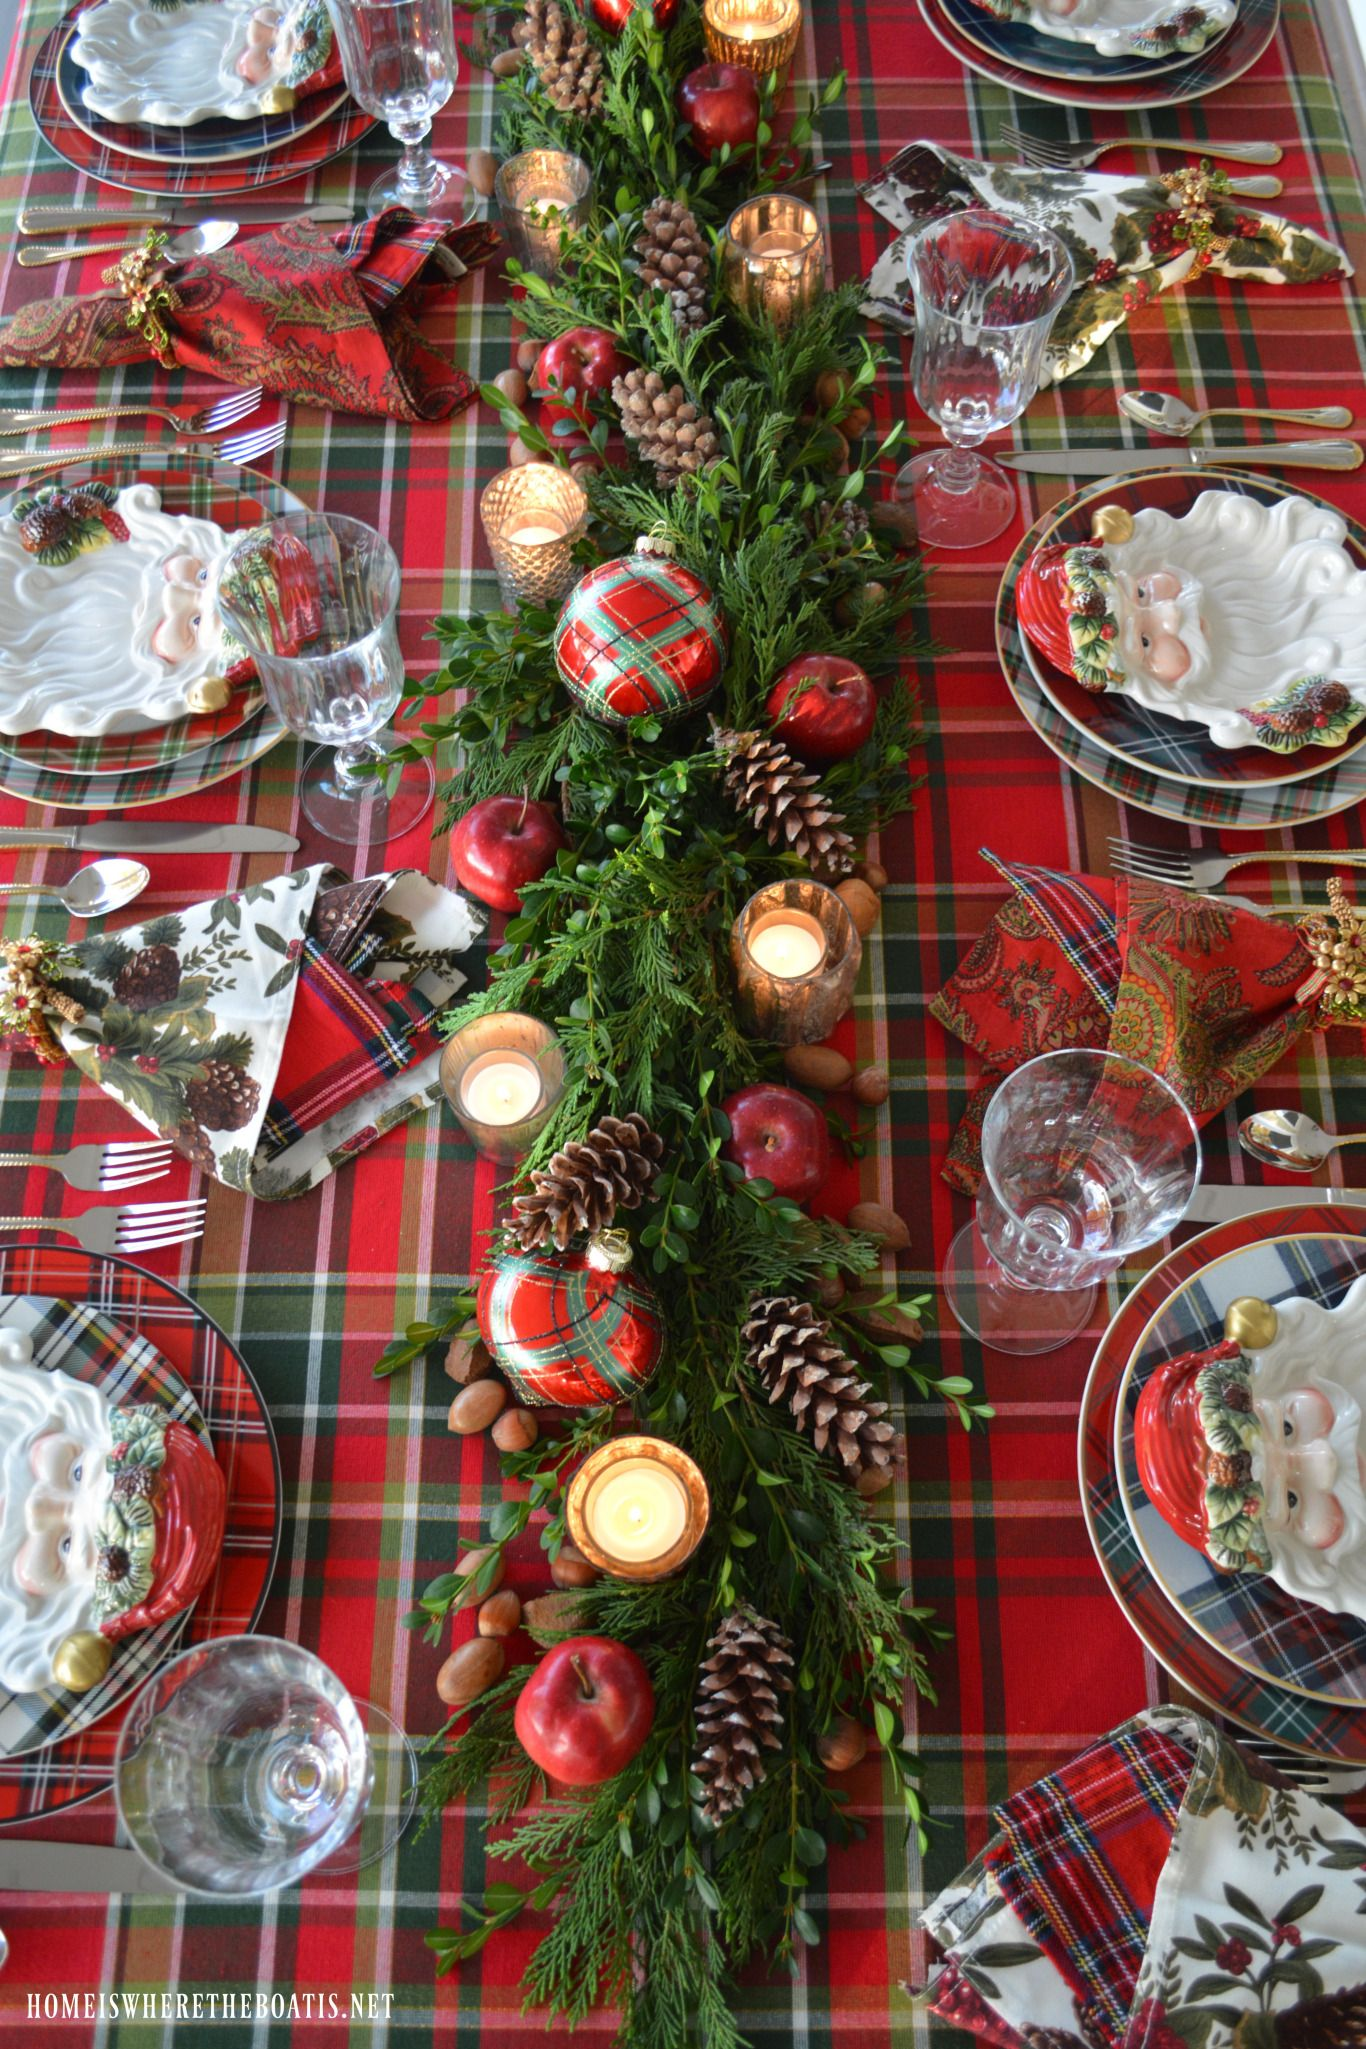 Plaid Tidings A Christmas Table With St Nick And A Natural Evergreen Table Runner Christmas Centerpieces Christmas Table Decorations Christmas Table Settings